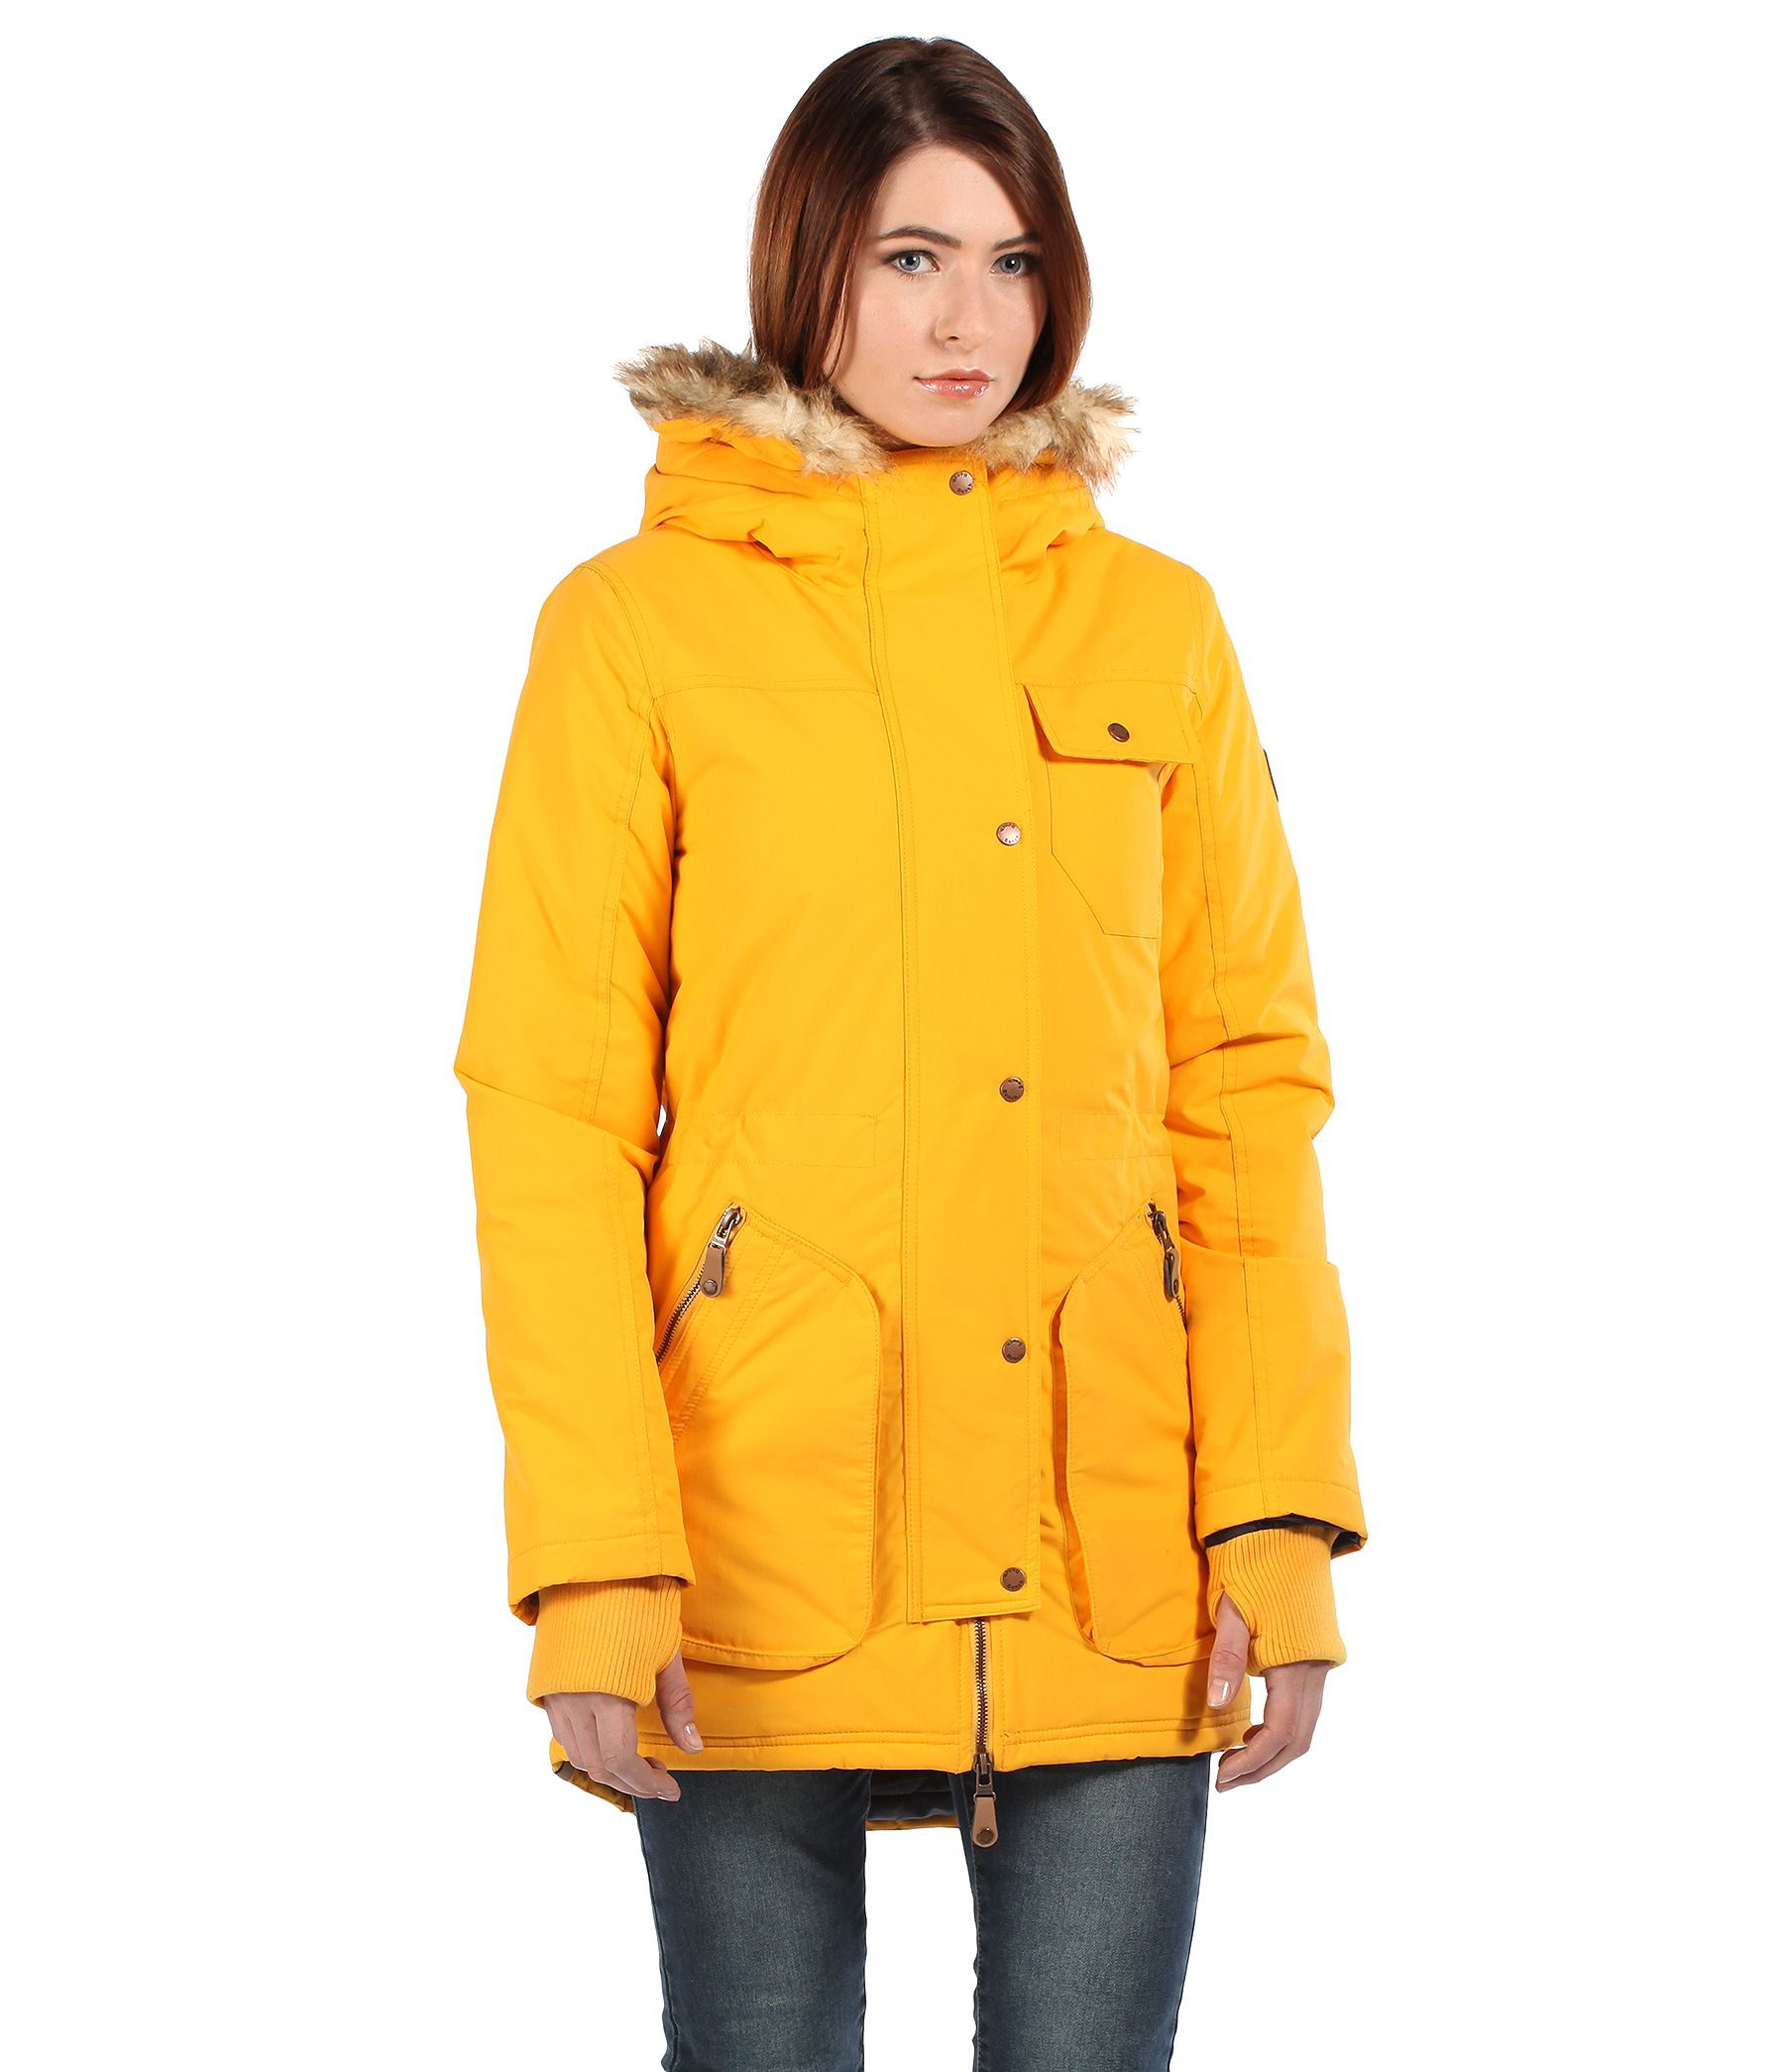 Bench Hailstone Jacket In Yellow Lyst